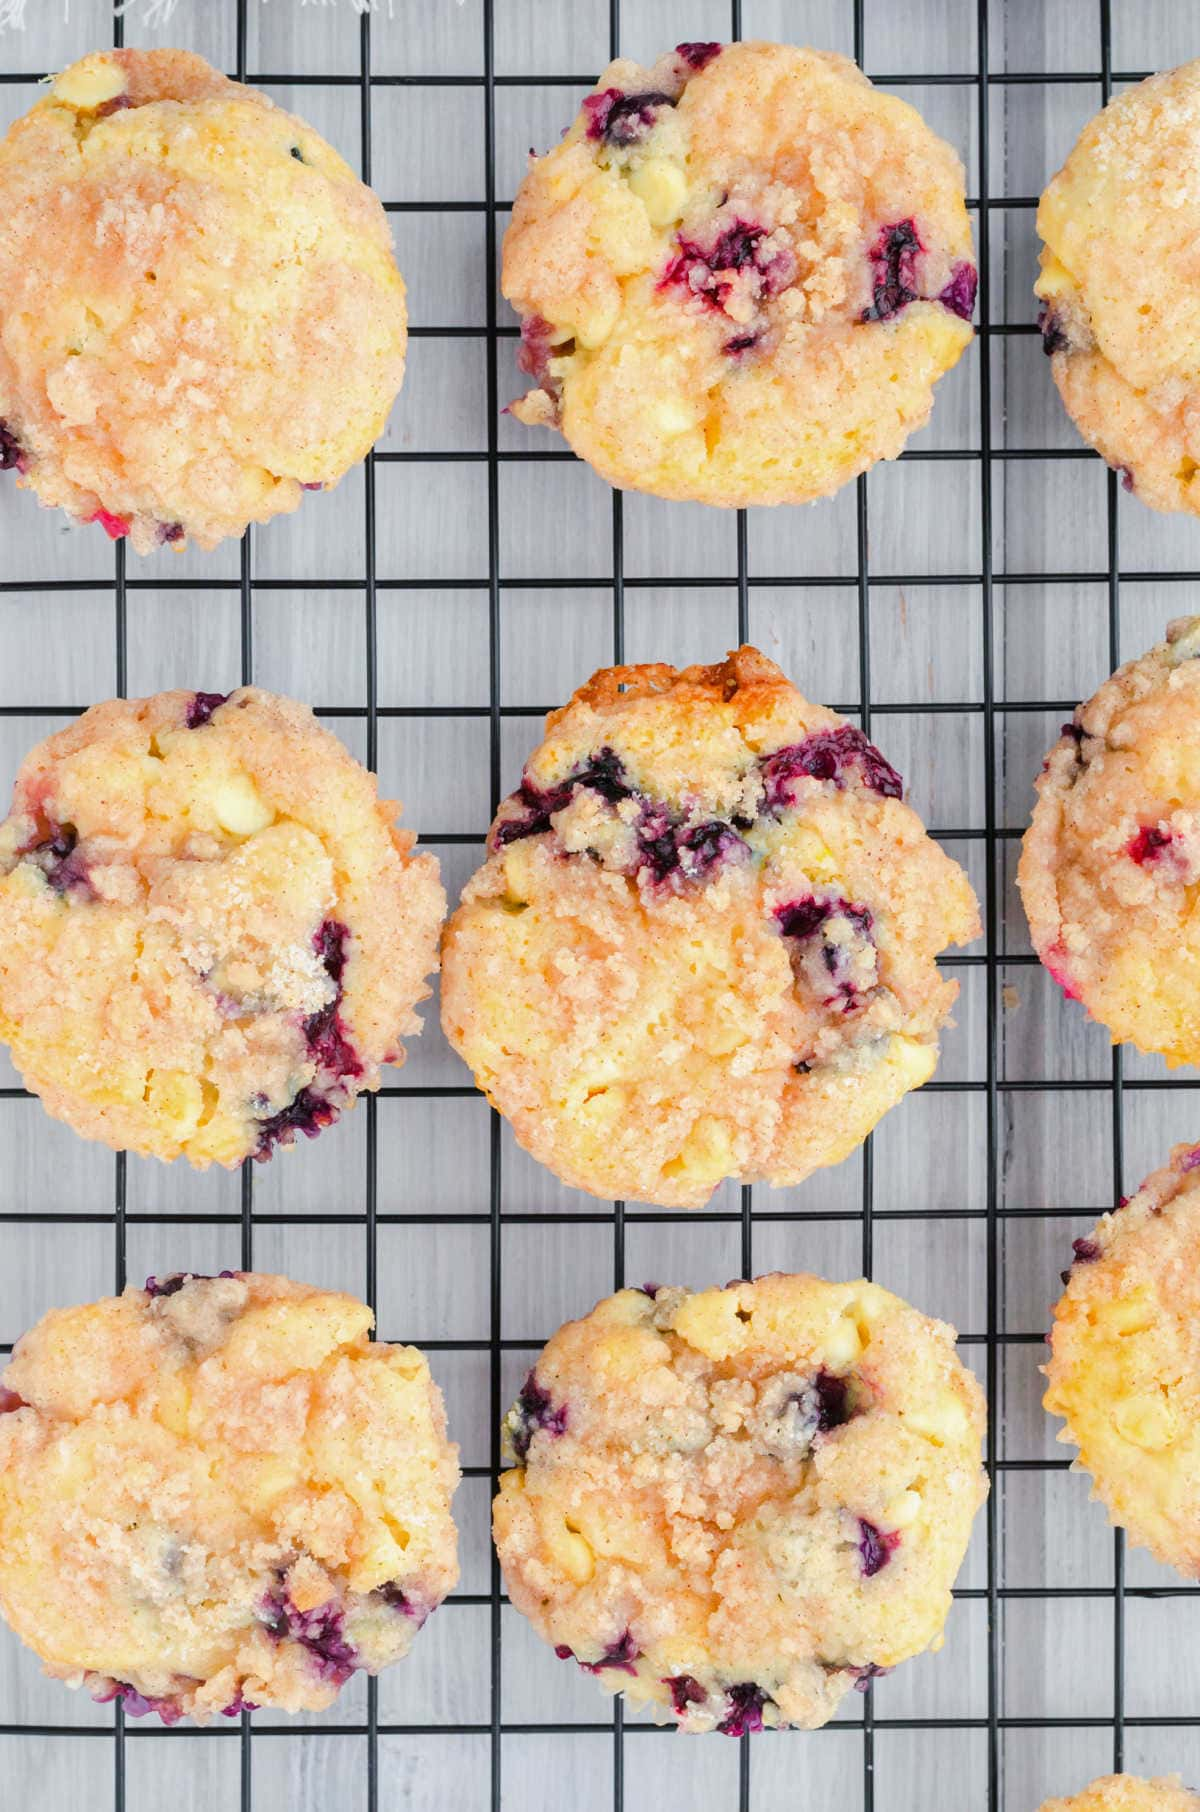 Decorative image. Overhead view of muffins on a cooling rack.